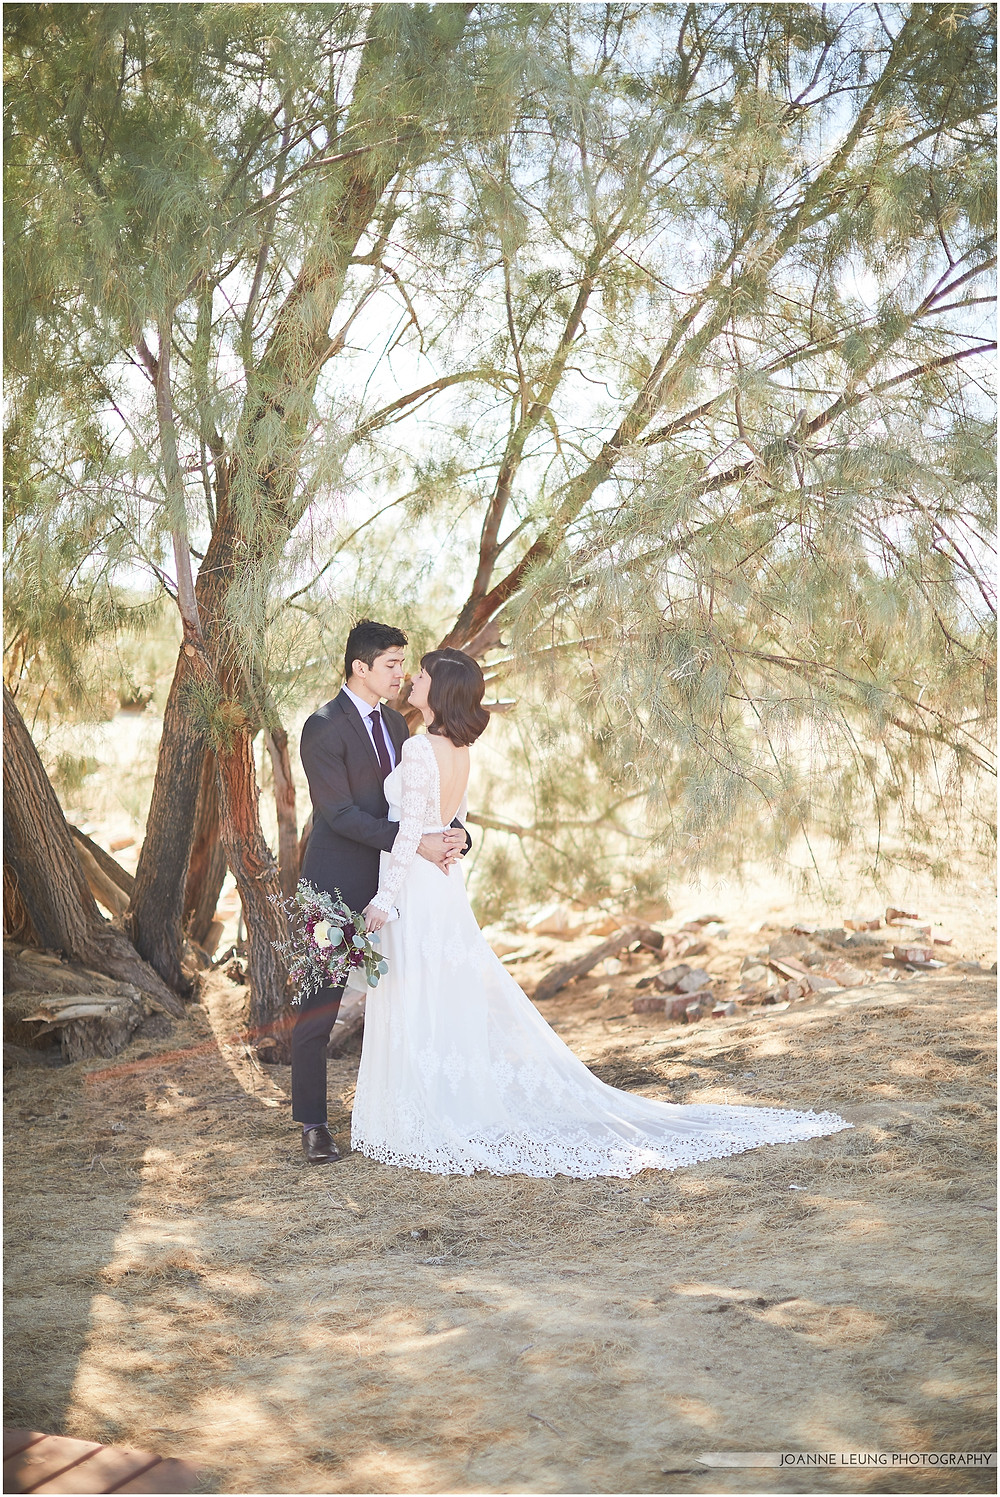 Joshua Tree Live Oak Wedding beautiful backless lace wedding dress bride and groom